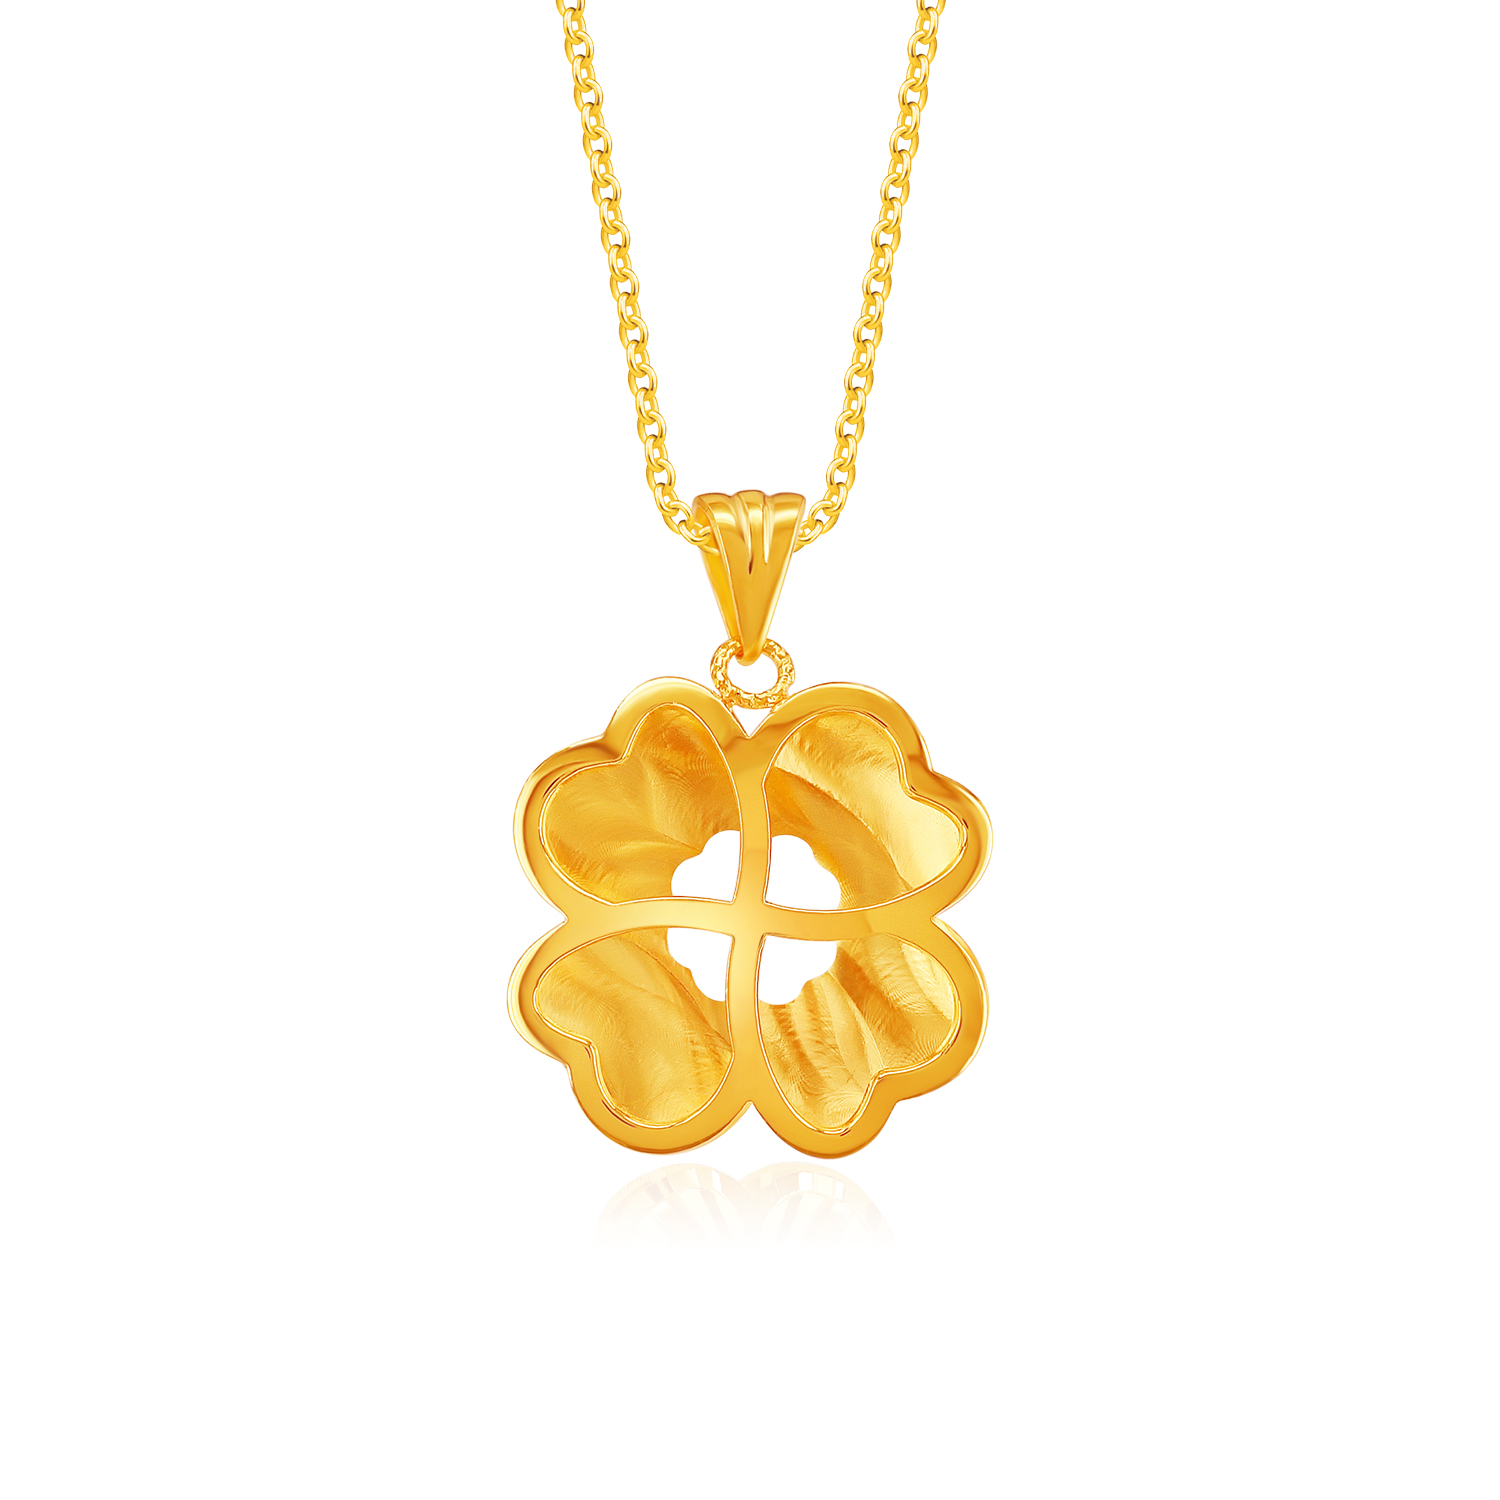 SK 916 Stay Lucky Gold Pendant